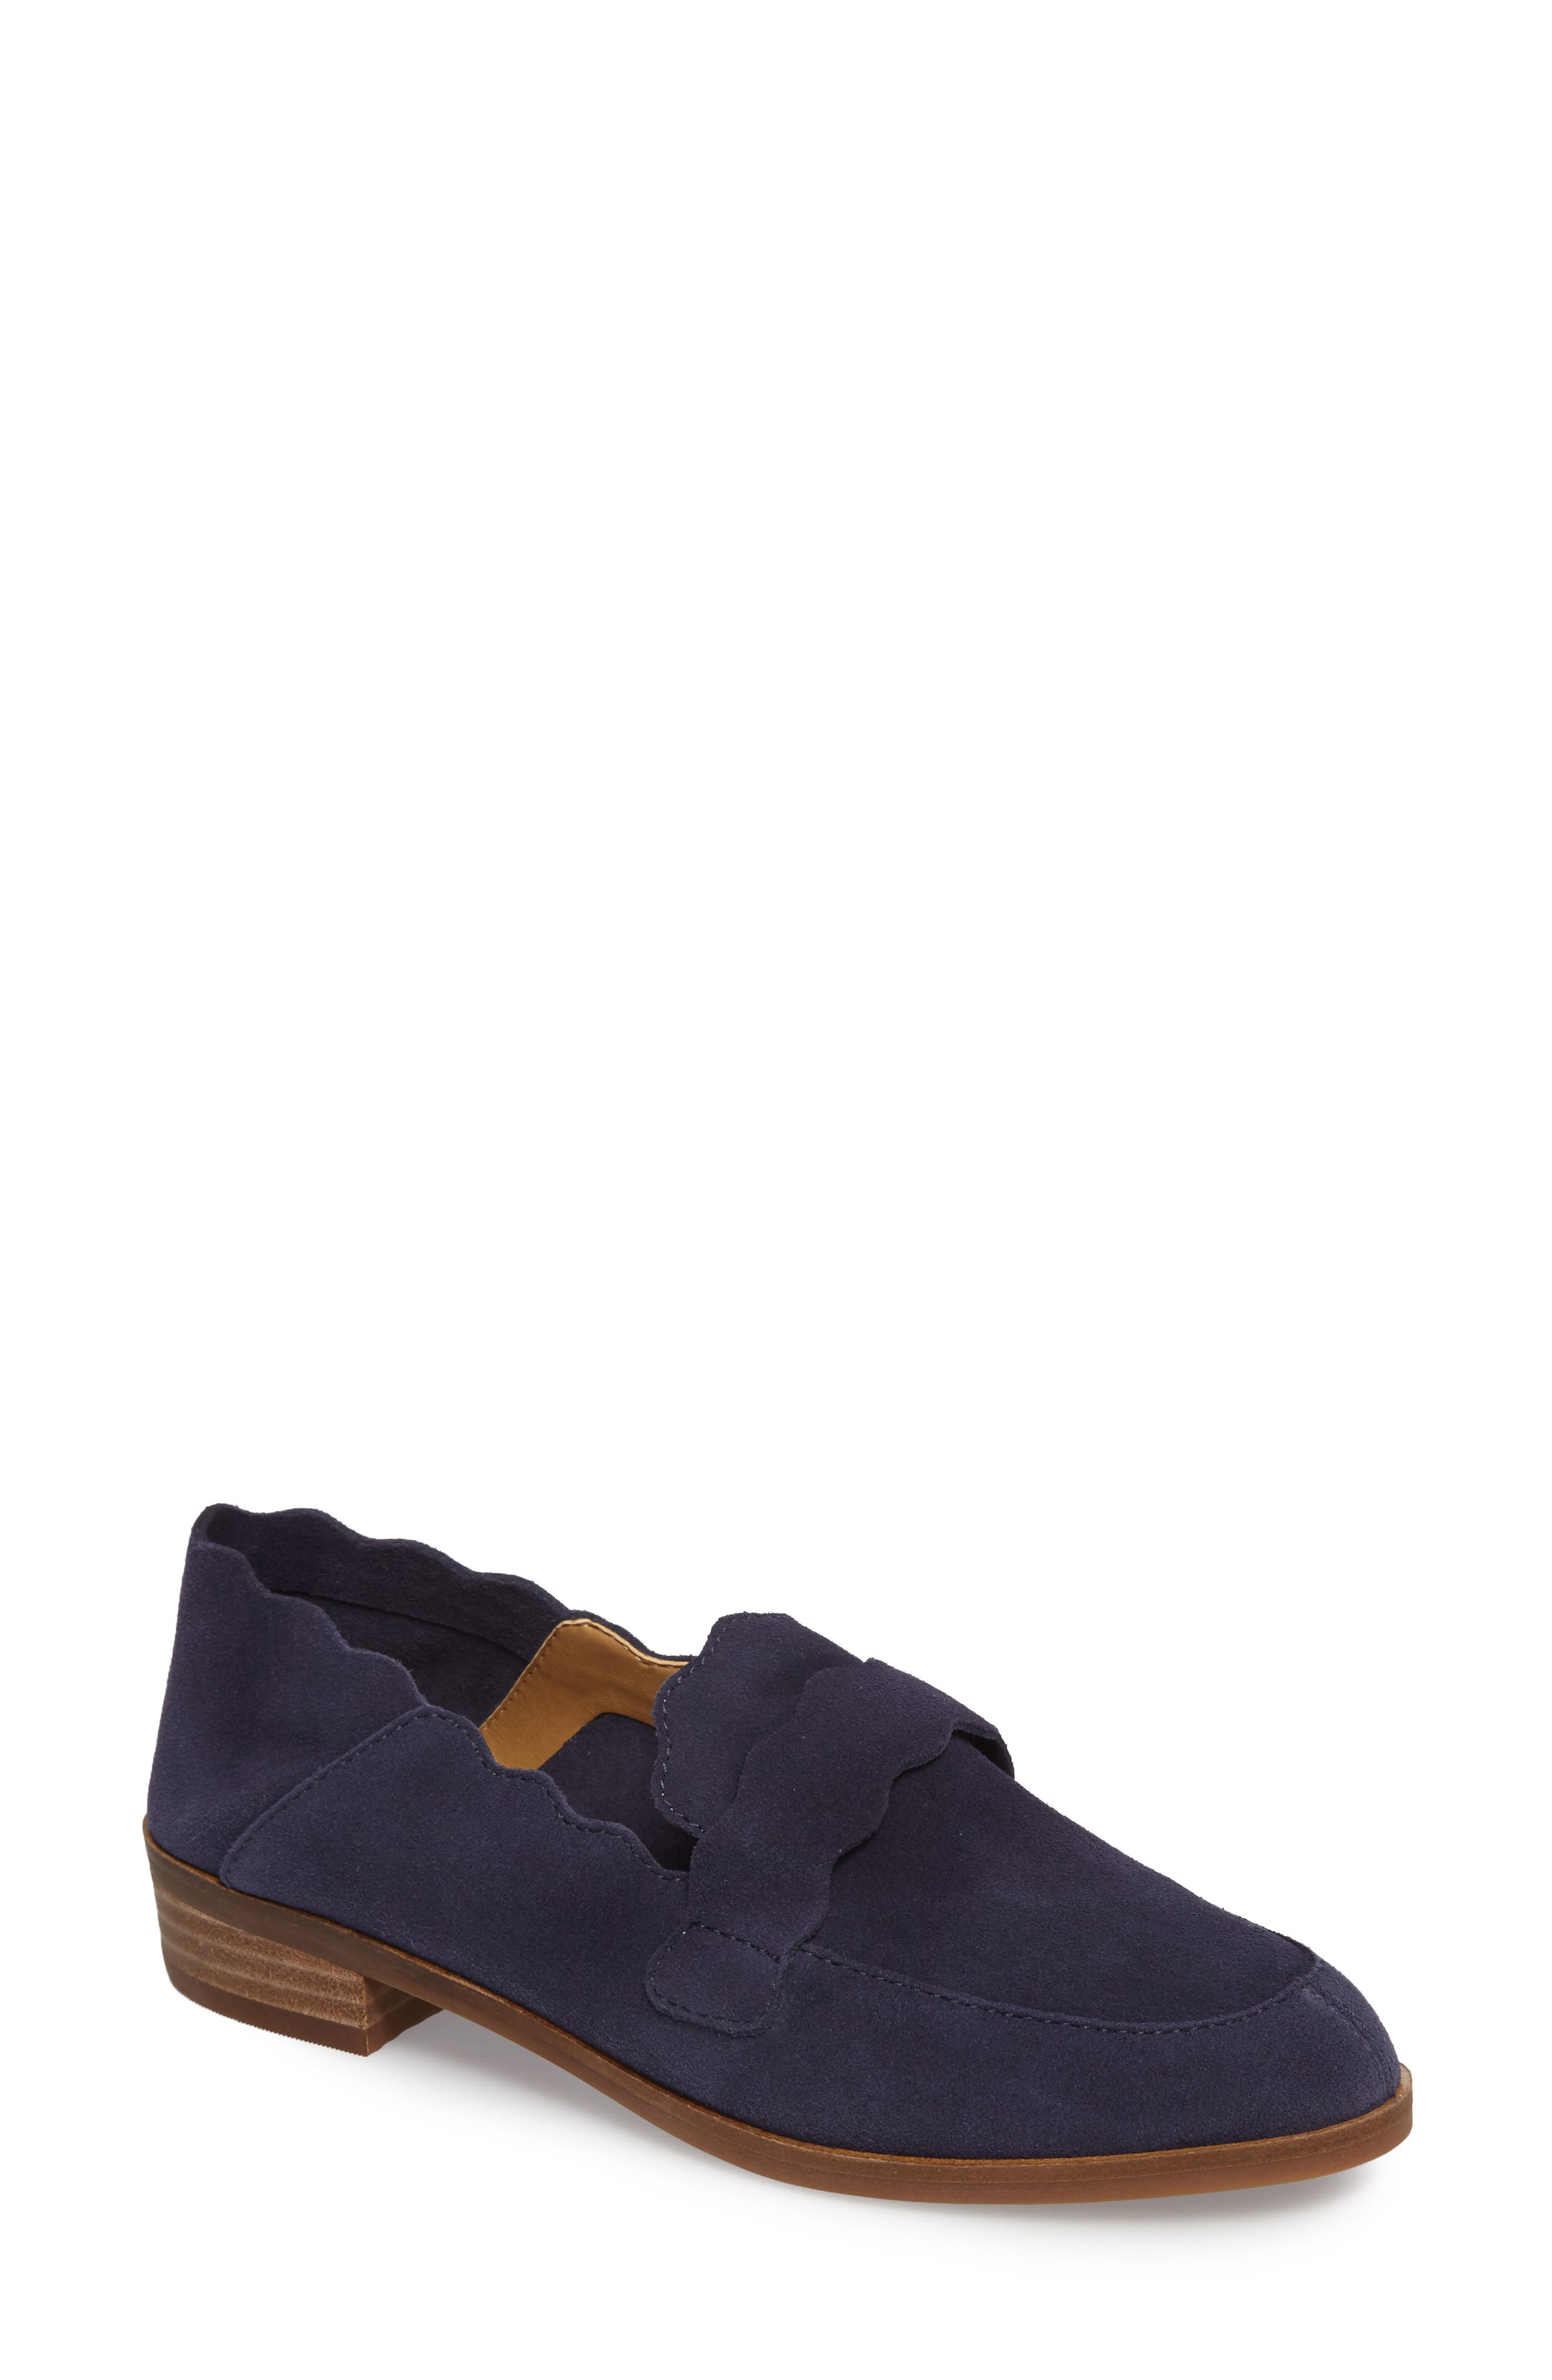 Callister Loafer,                             Main thumbnail 4, color,